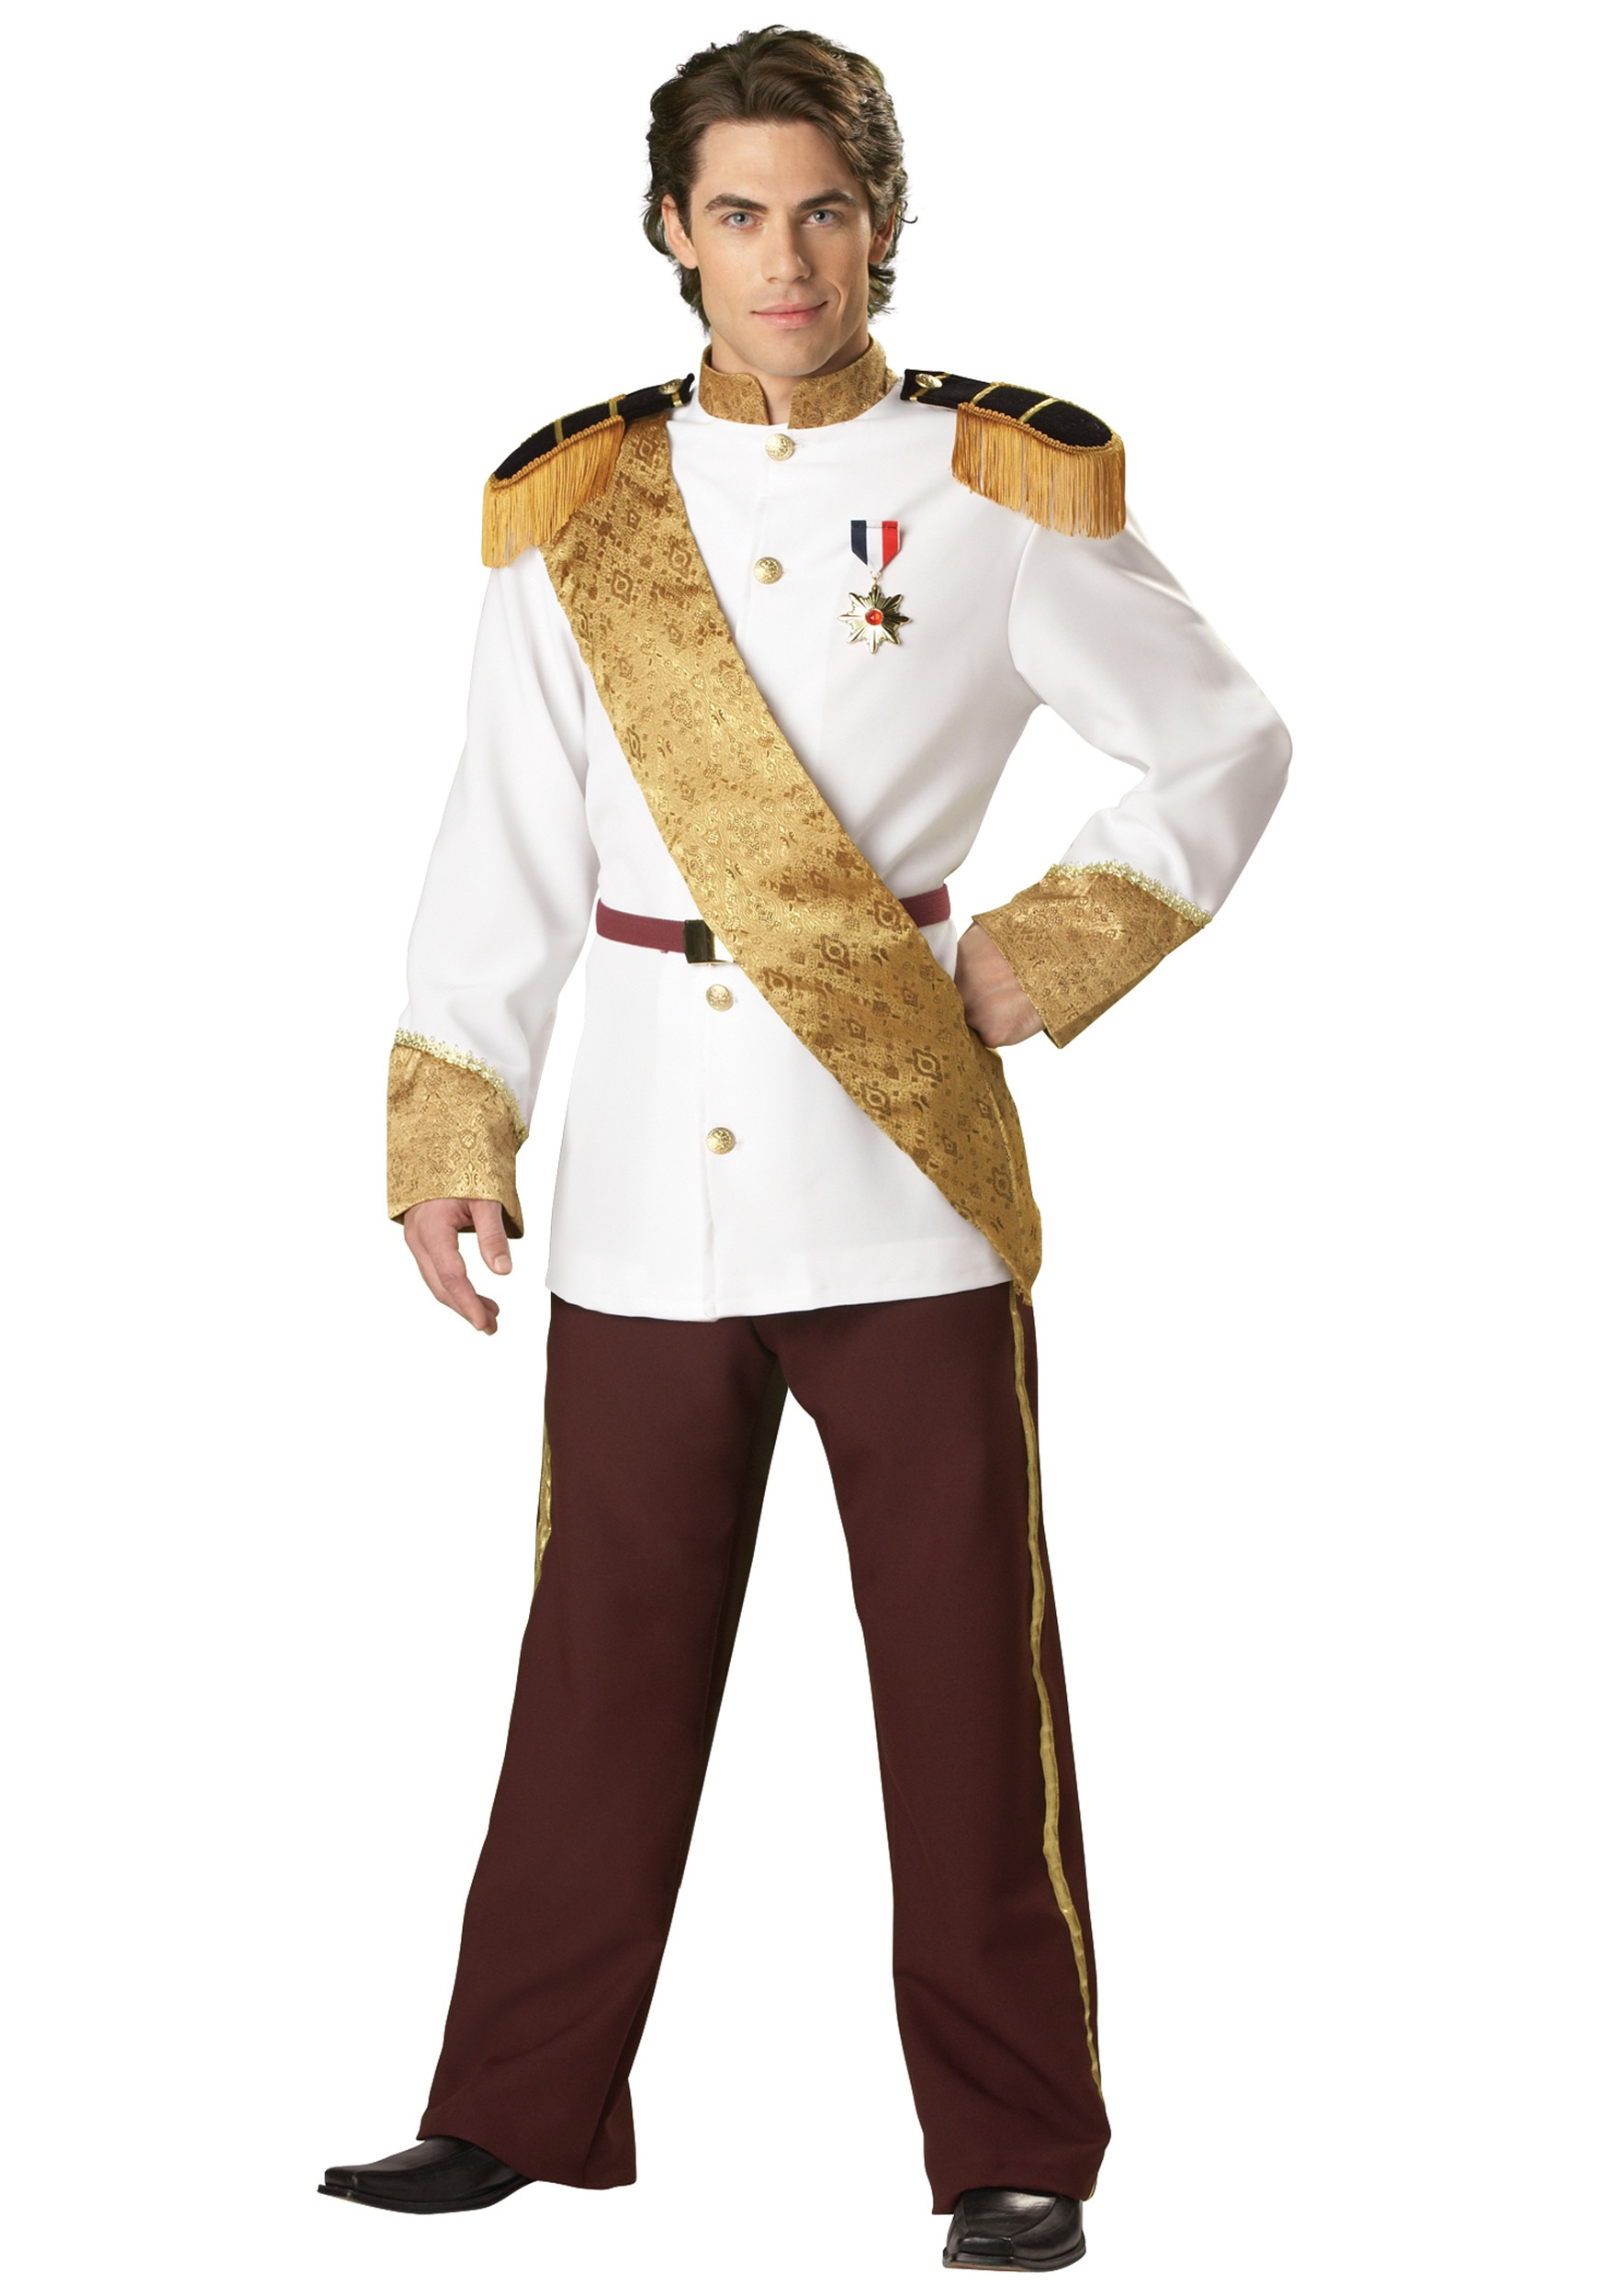 sc 1 st  Halloween Costumes : prince charming halloween costume  - Germanpascual.Com